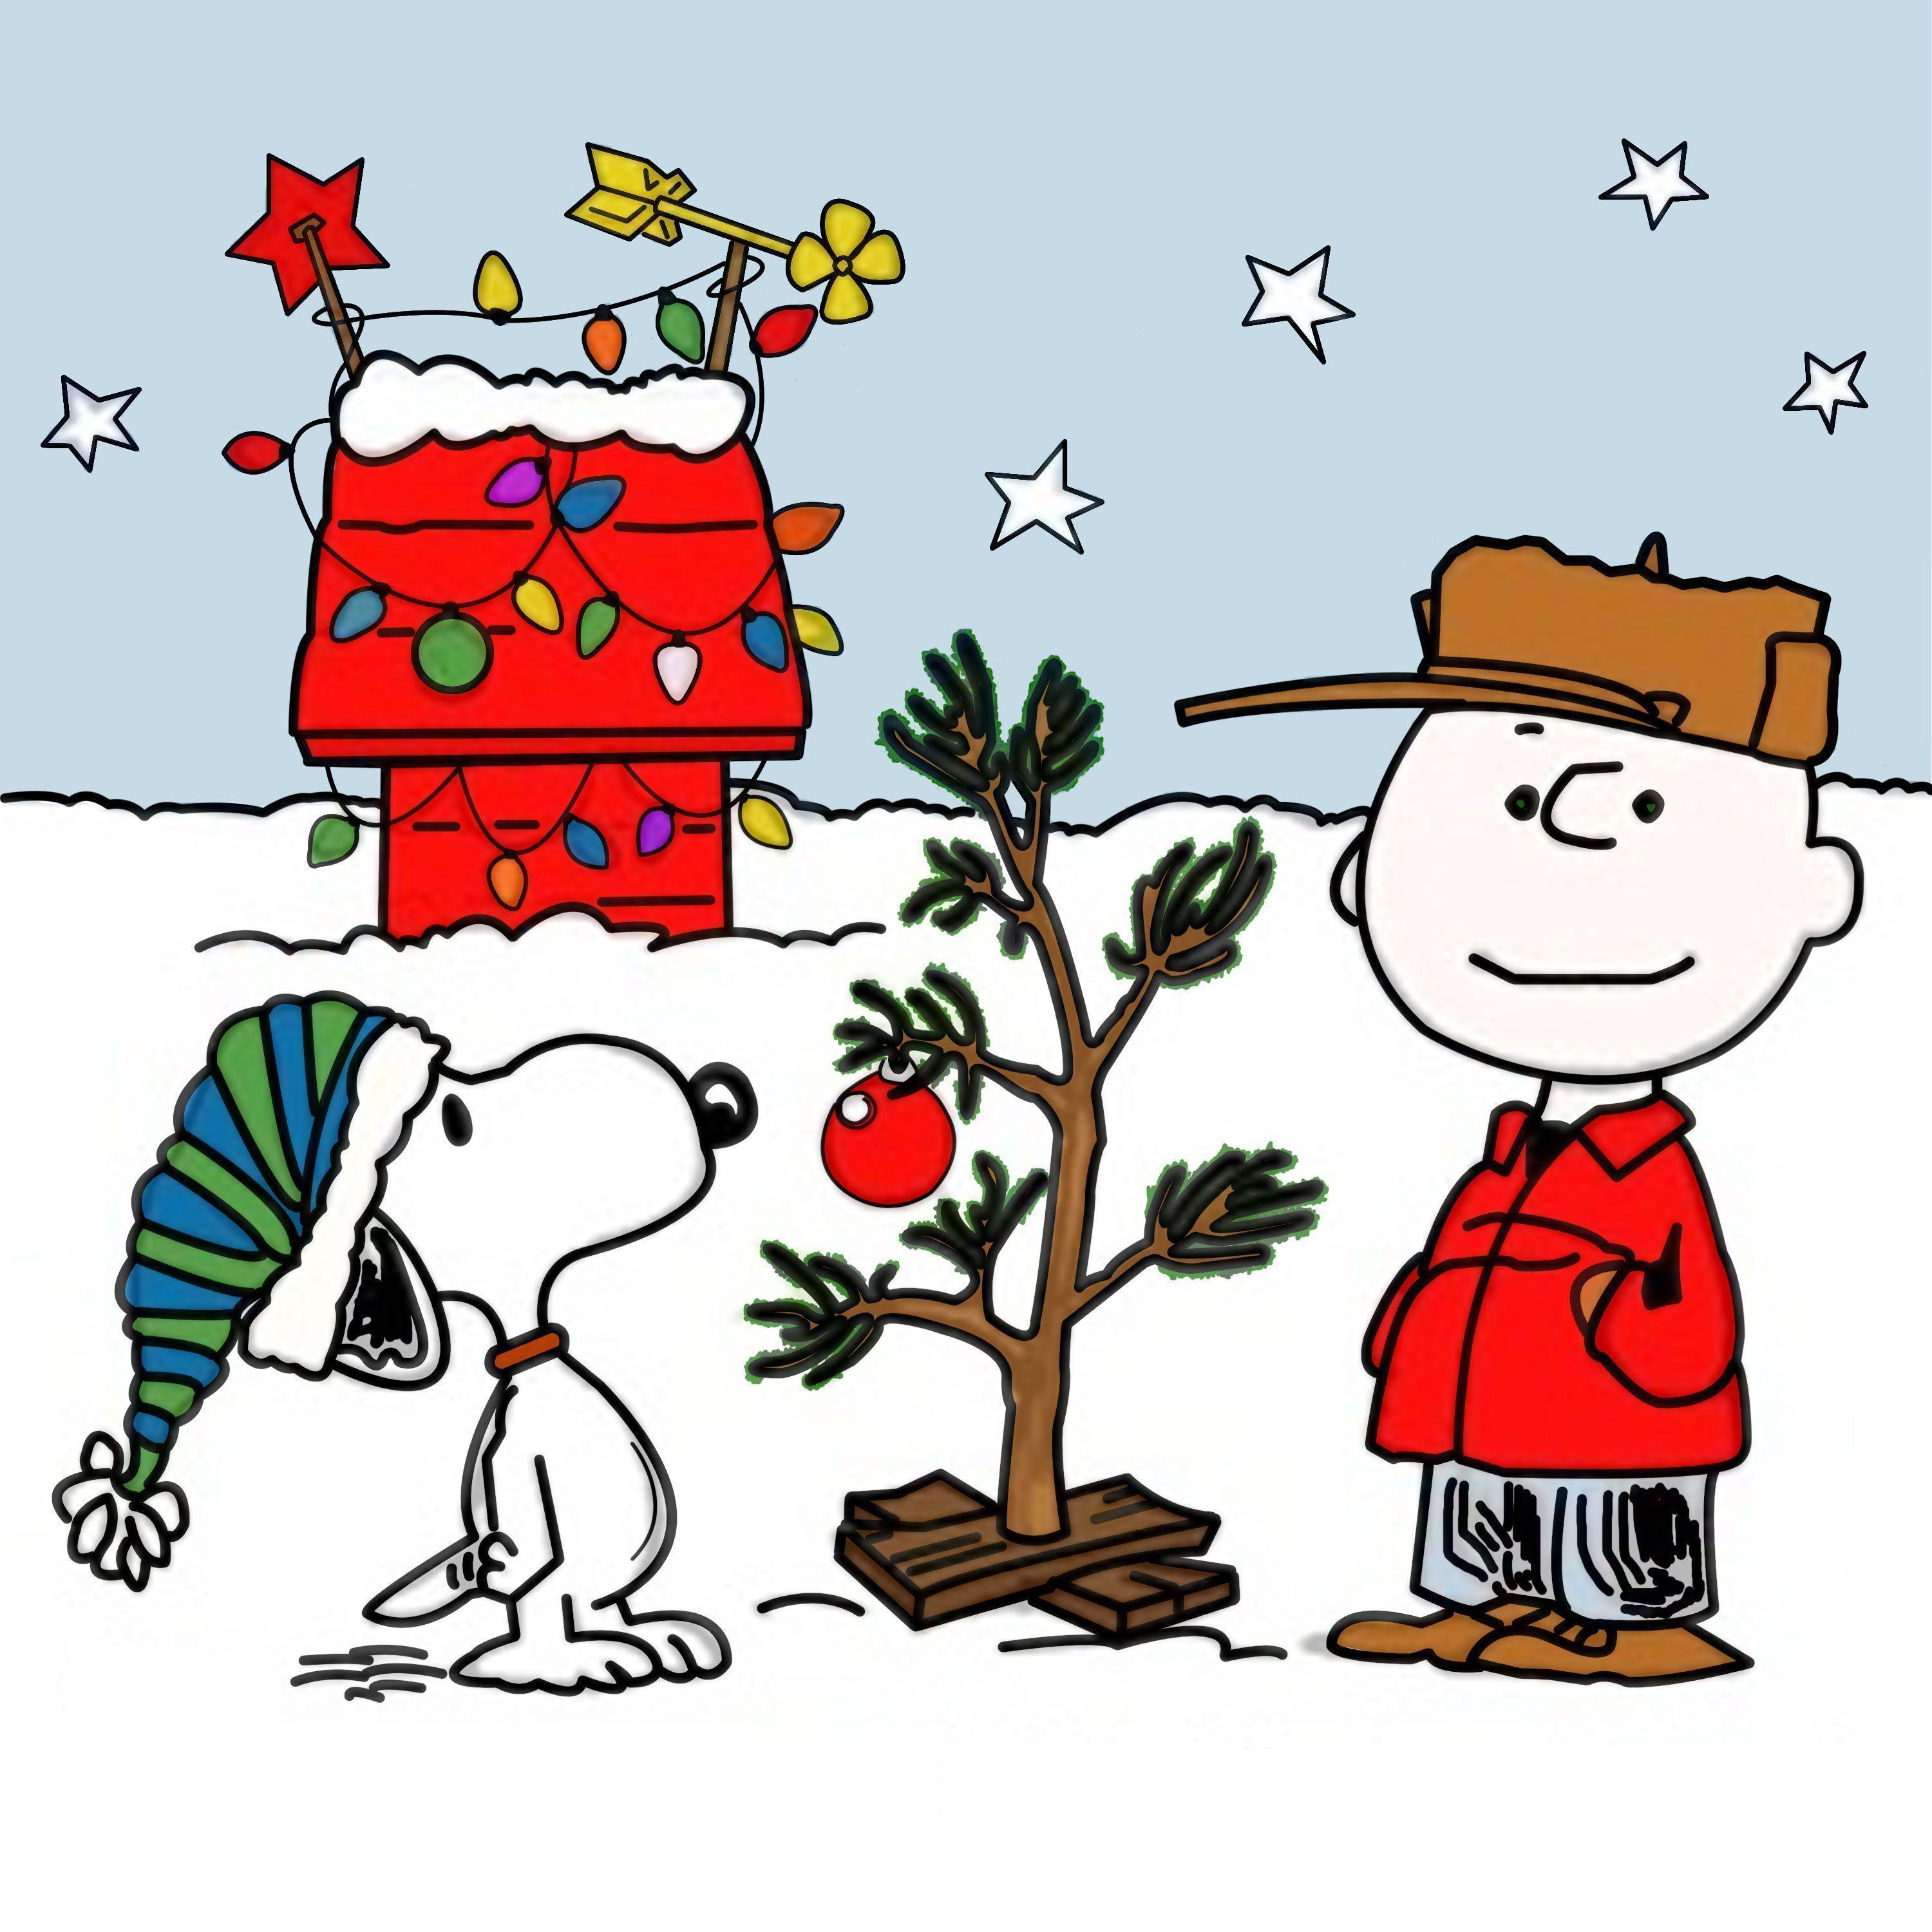 Snoopy christmas backgrounds wallpaper cave - Free snoopy images ...